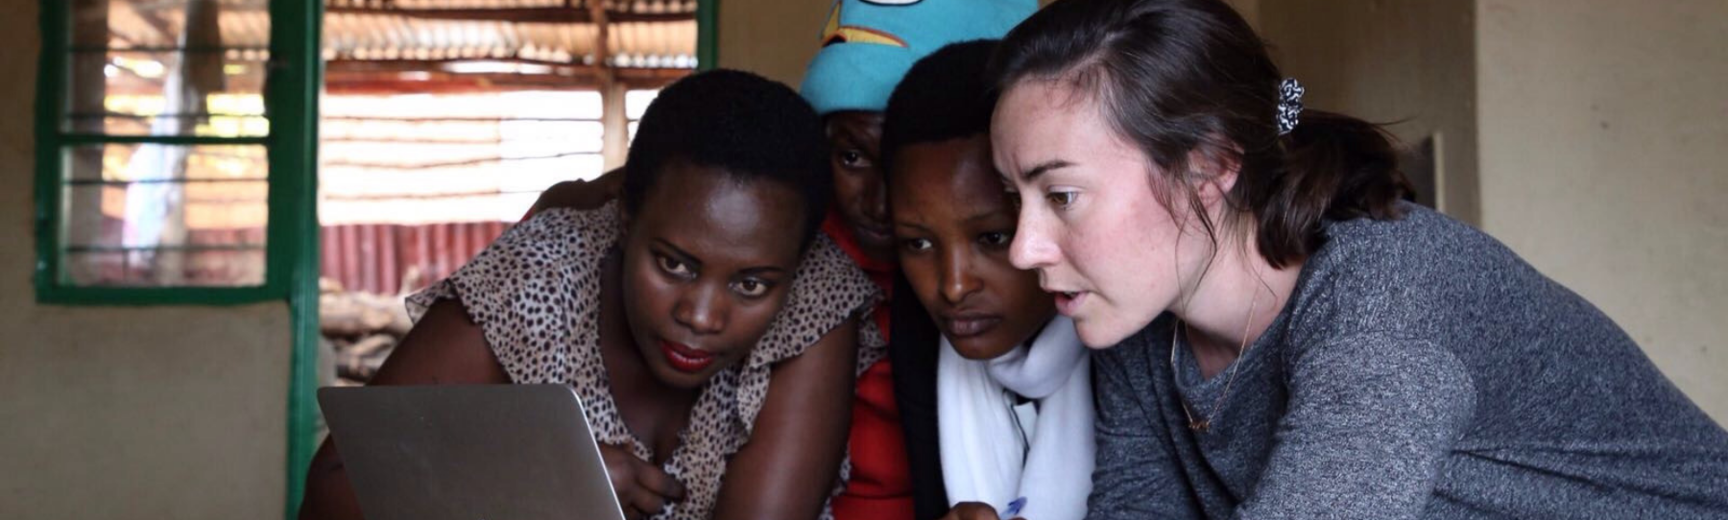 Image of julie greene in rwanda skoll scholar web banner